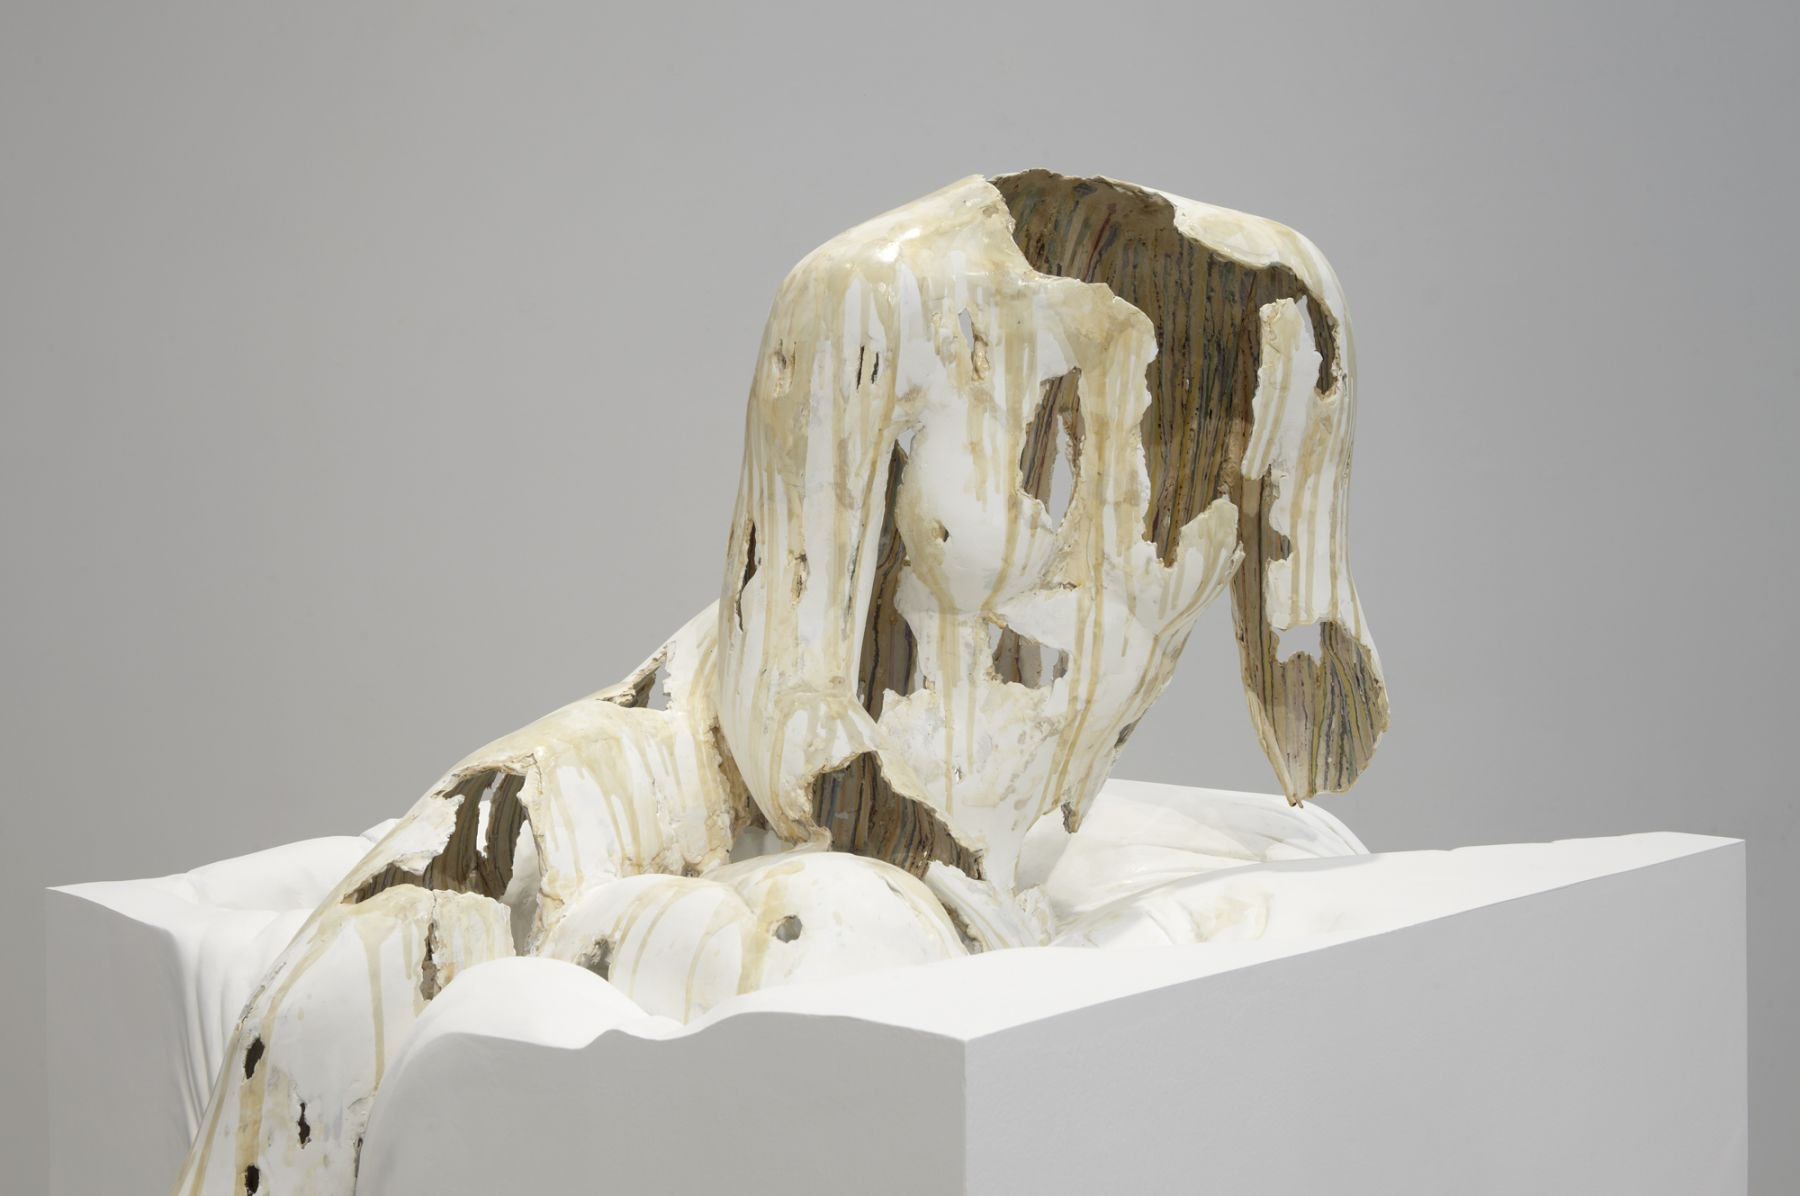 Antonym, 2012, steel, polymer gypsum, fiberglass, wood, foam, paint